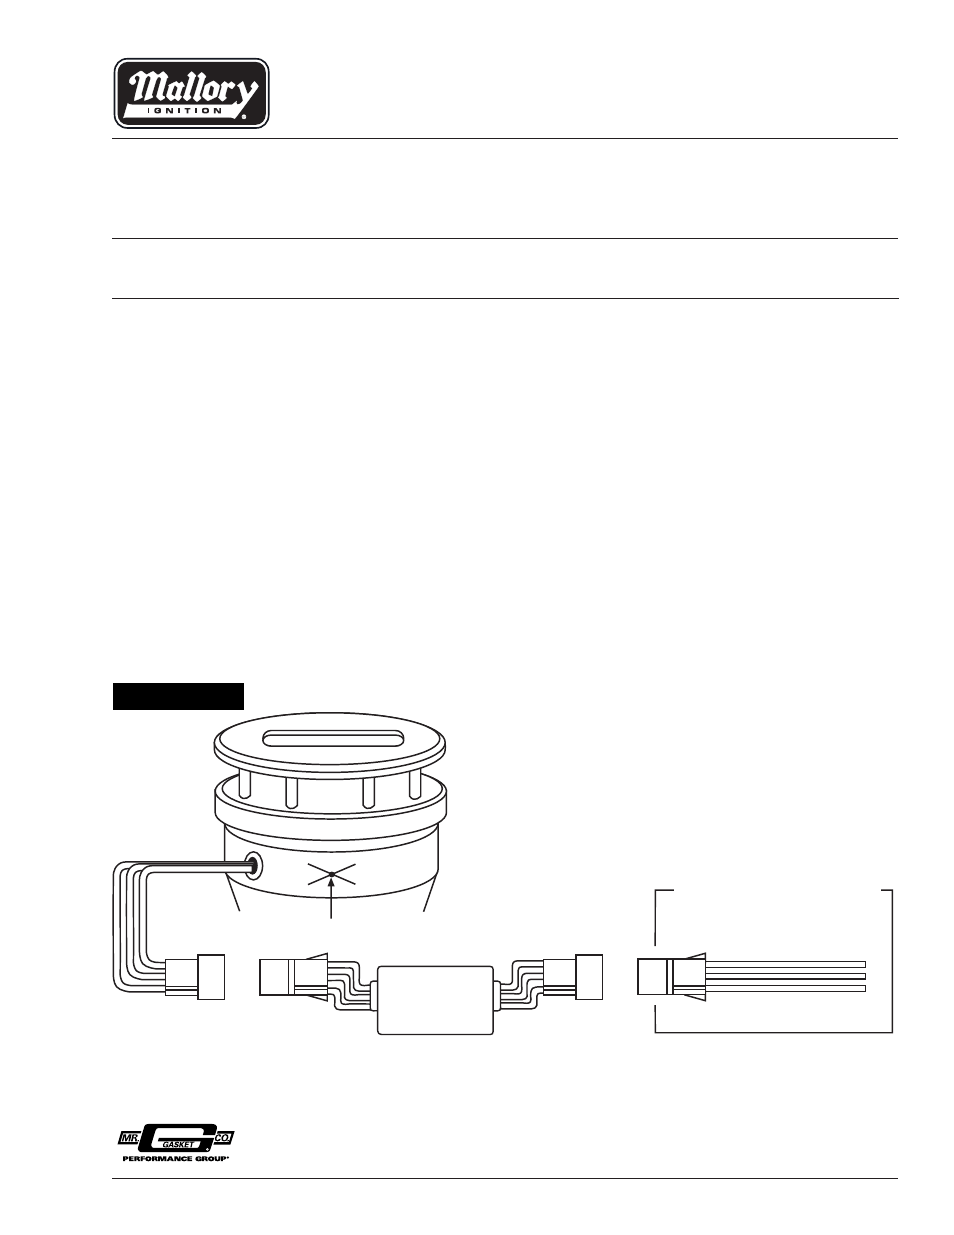 Mallory Ignition Wiring Diagram Pro 9000 Auto Electrical Tappan Air Conditioner 1979 Dodge 440 Hyfire 6a